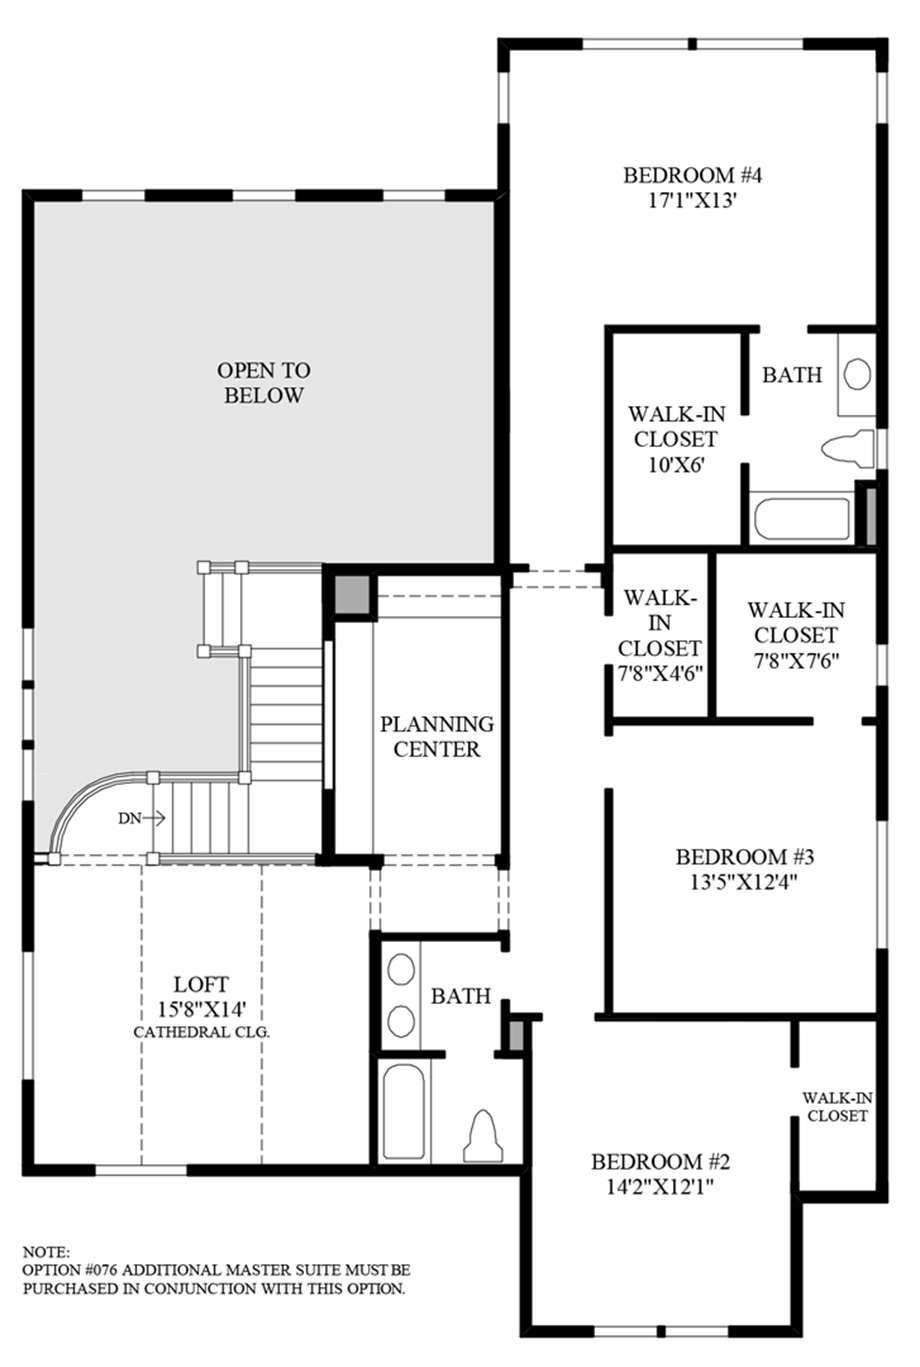 Alternate 2nd Floor Floor Plan